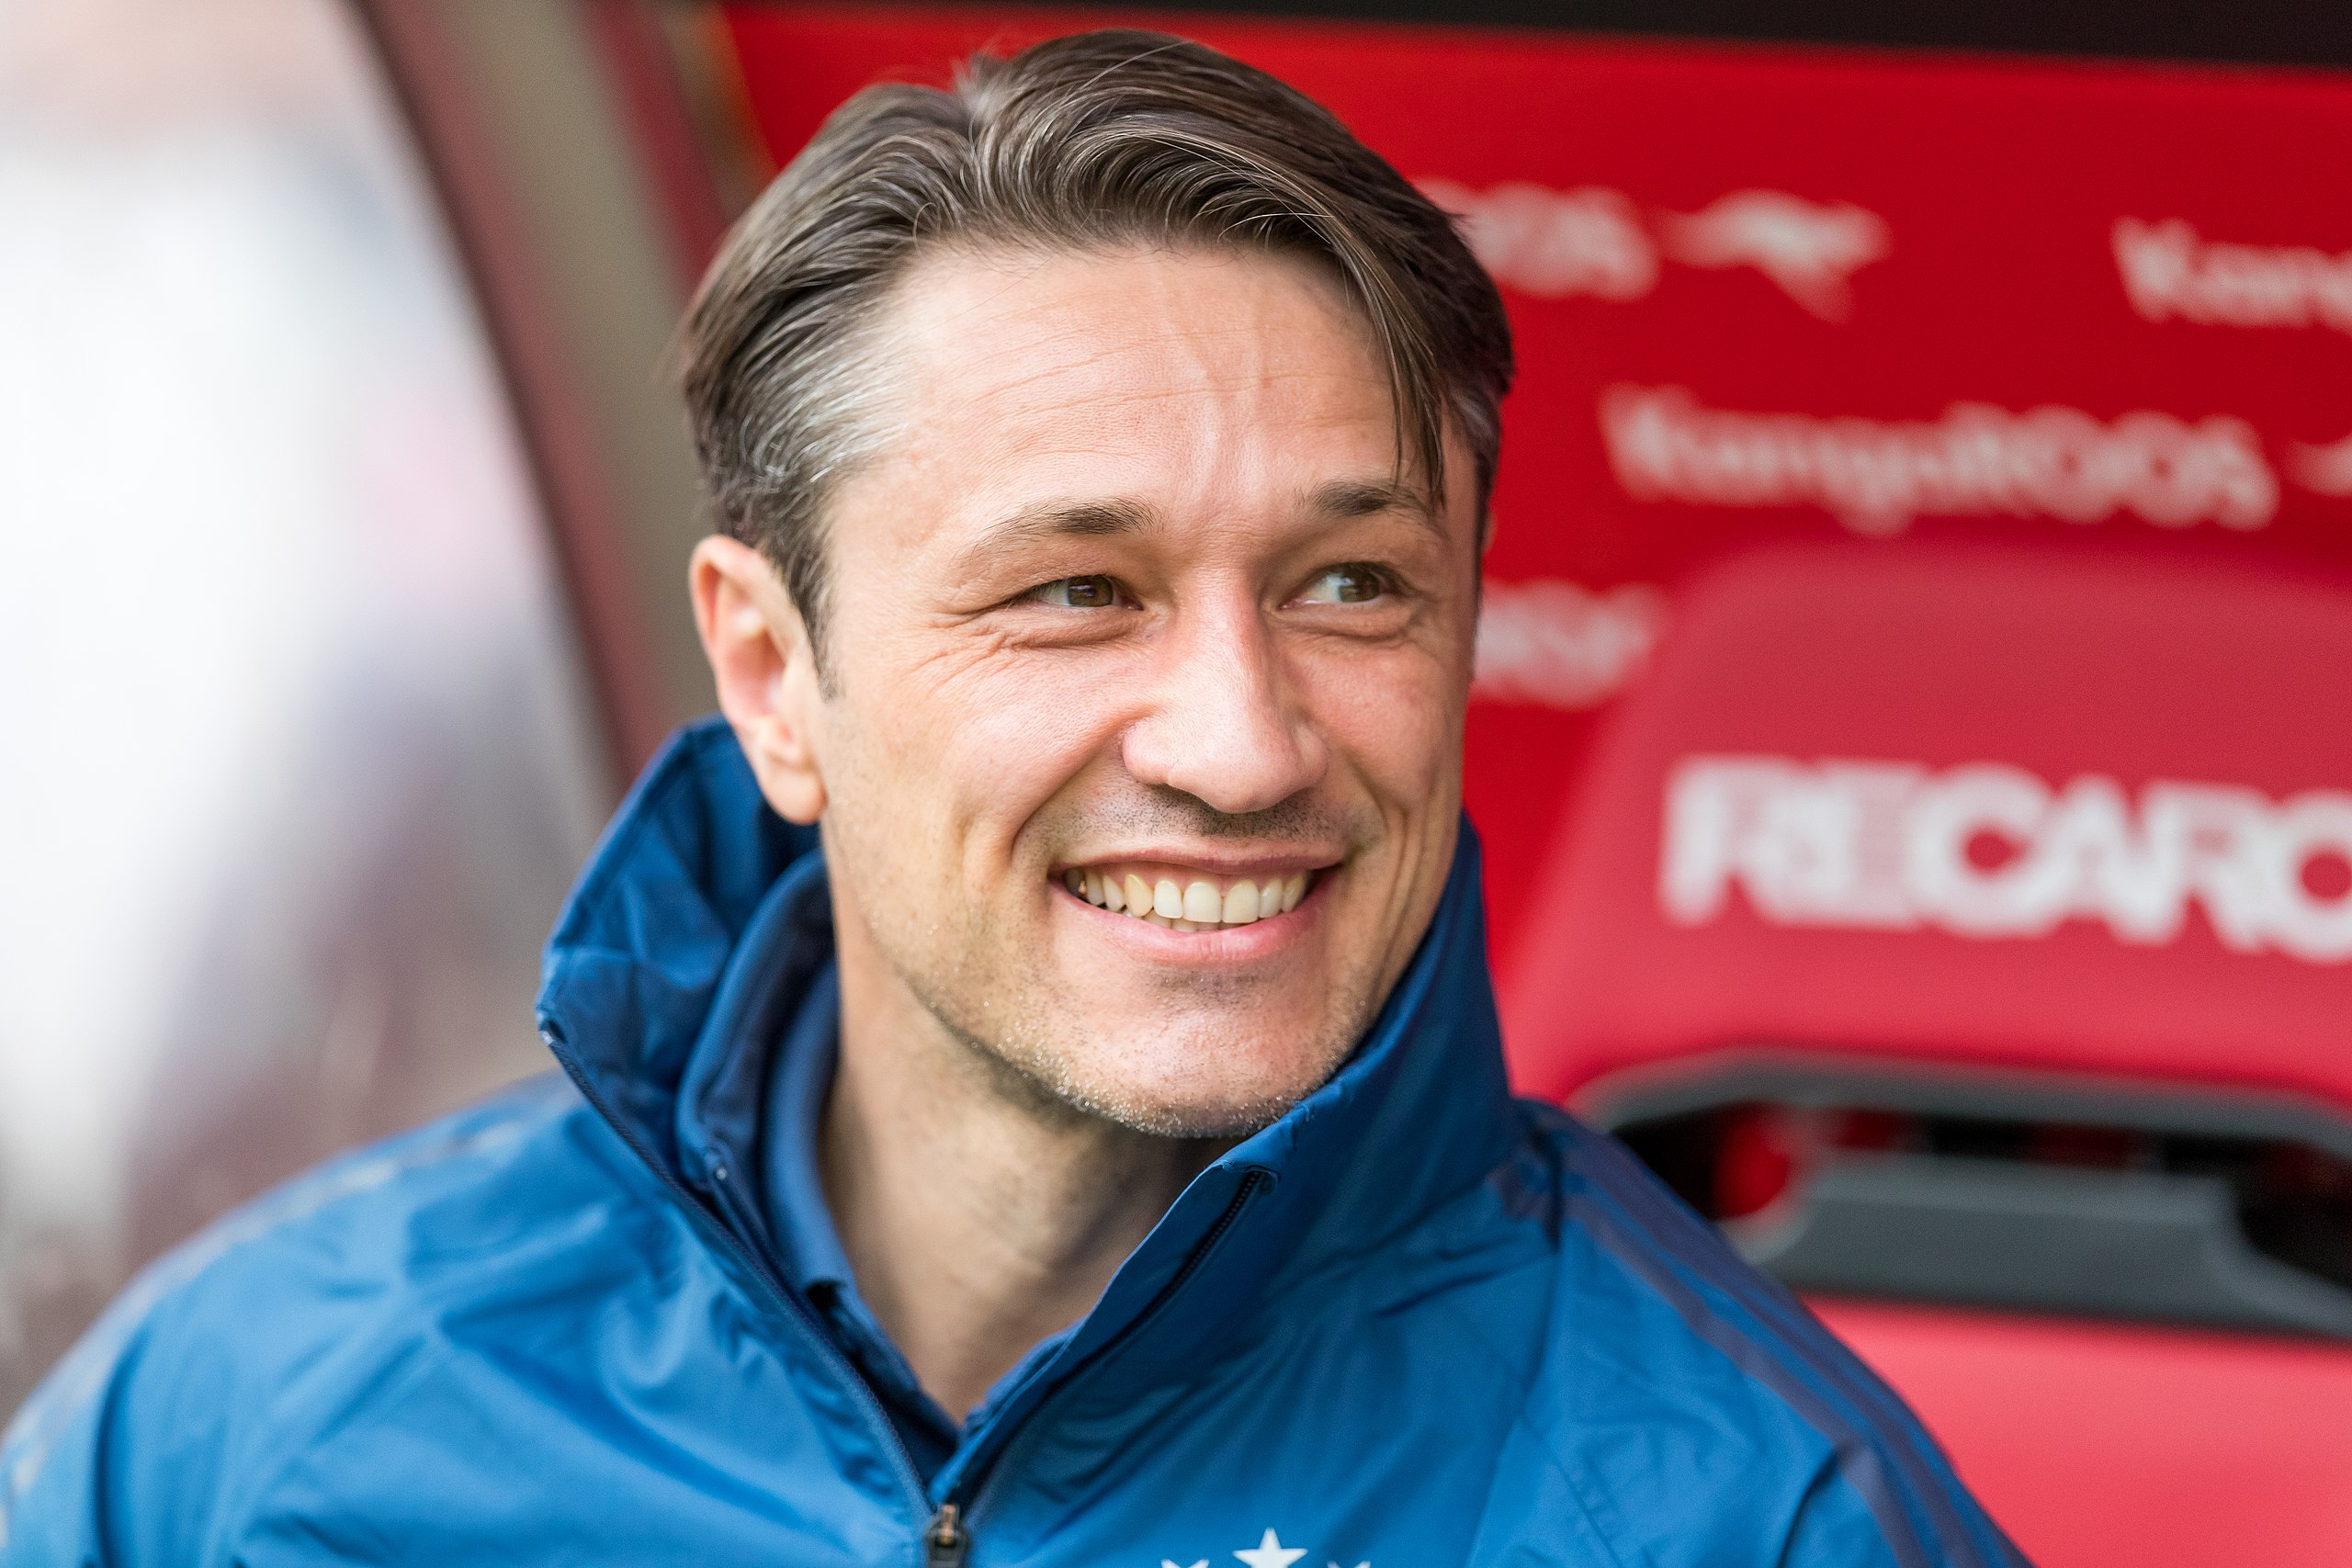 Niko kovac manager of the year in France with Monaco